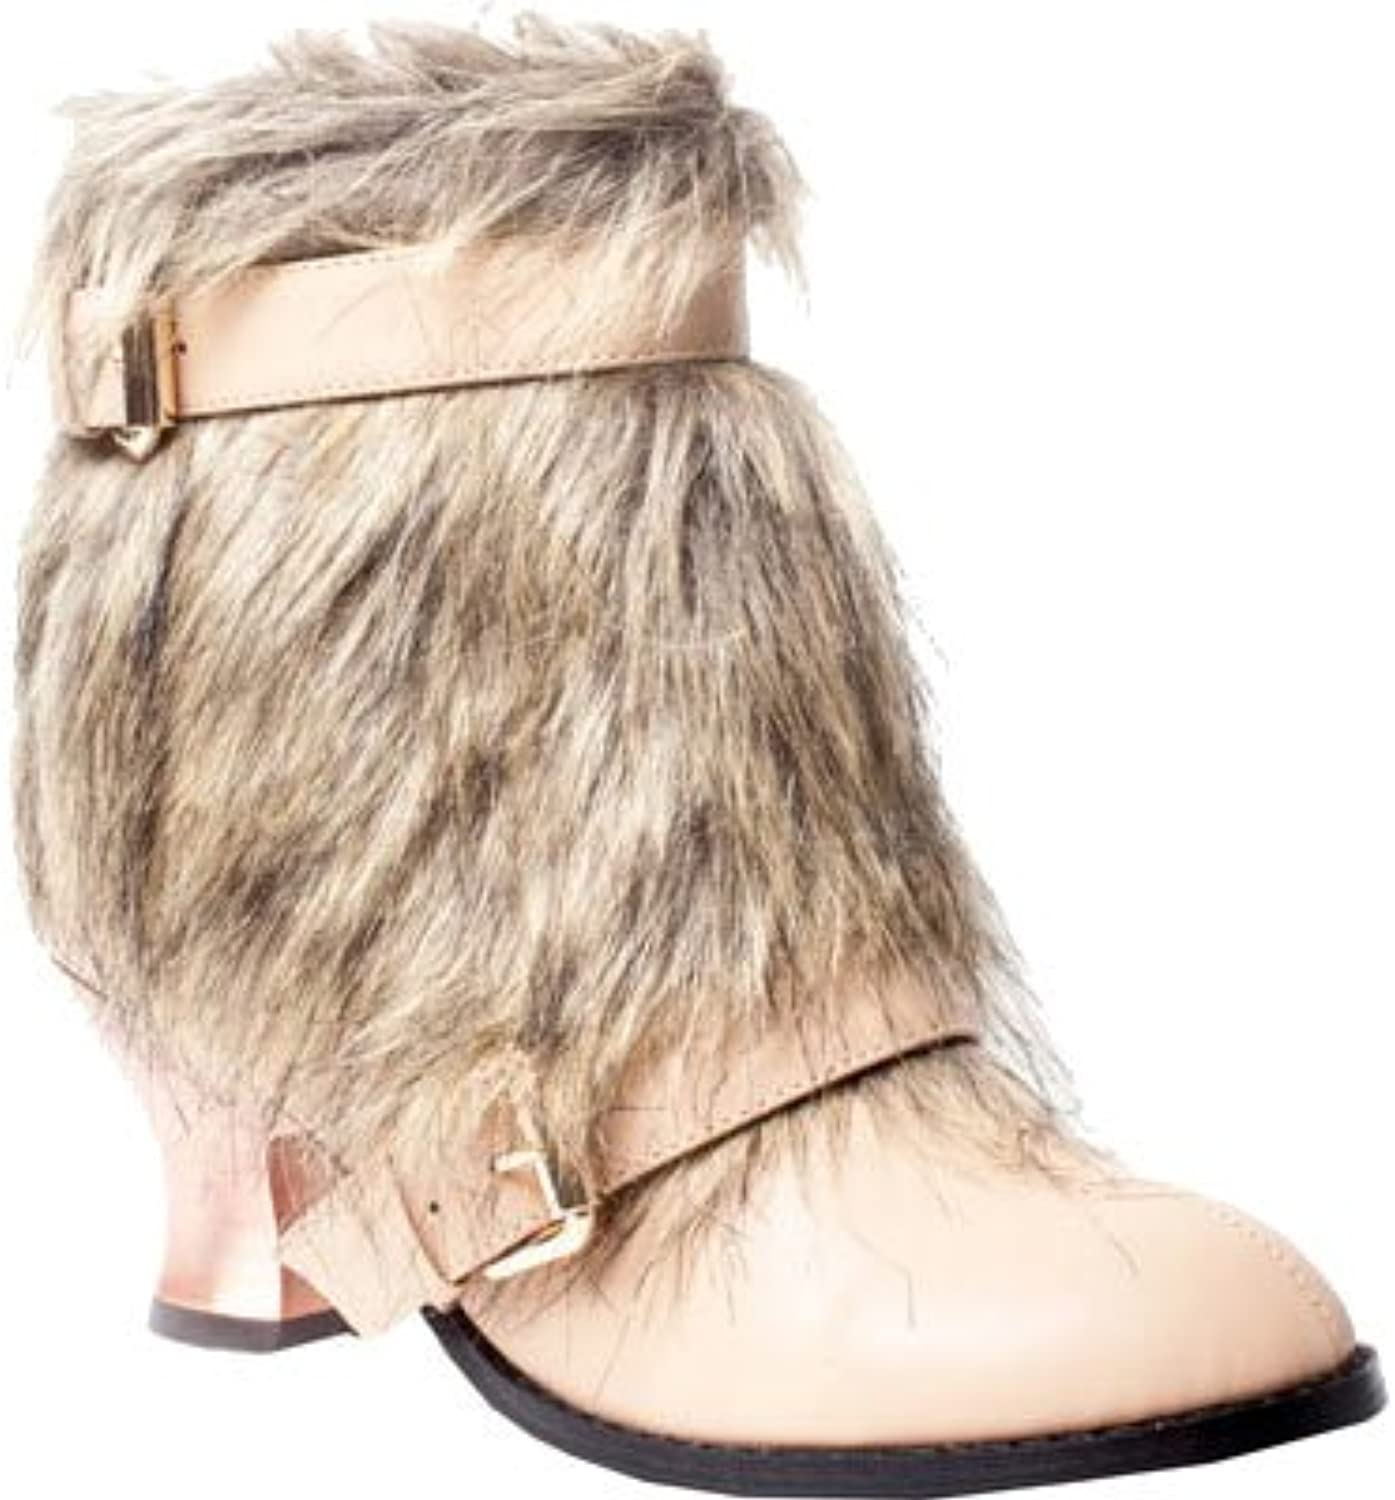 Hades shoes H-ELEN Animal friendly fur and synthetic leather low boot shoes 10   Tan